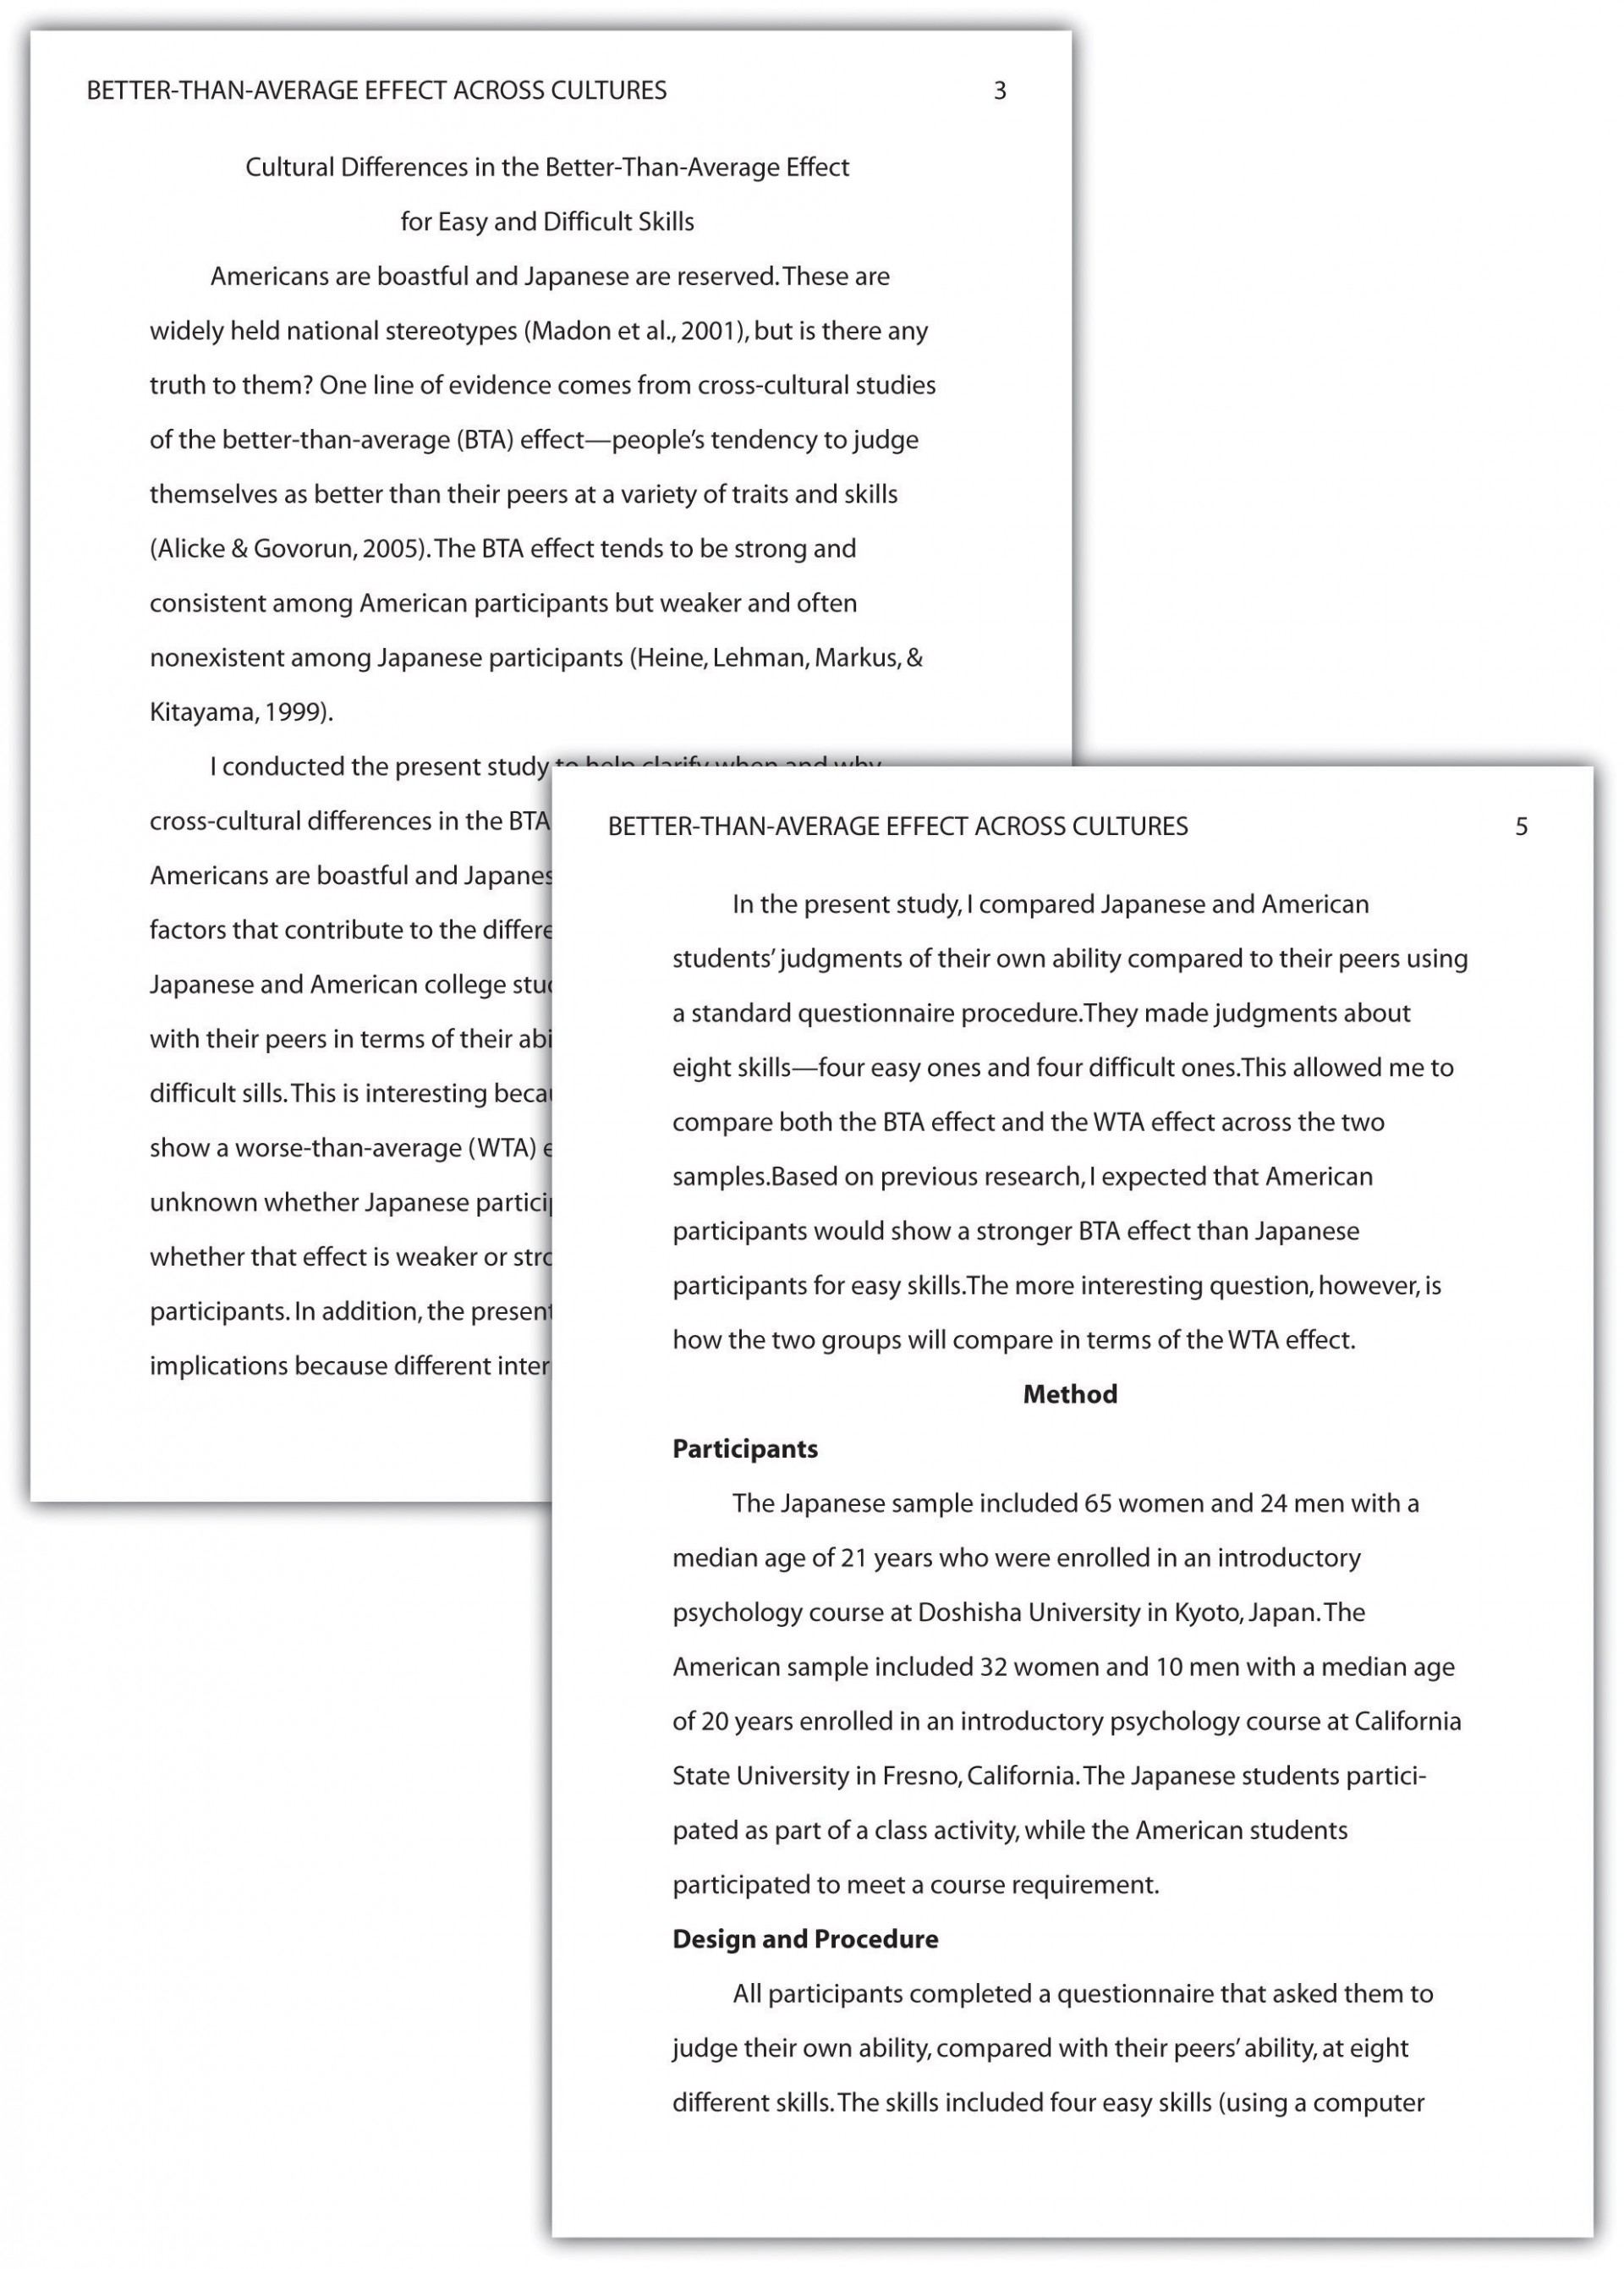 015 Essay Format Apa Template Example Price Fig11 003 Breathtaking Free Outline Word 2010 1920